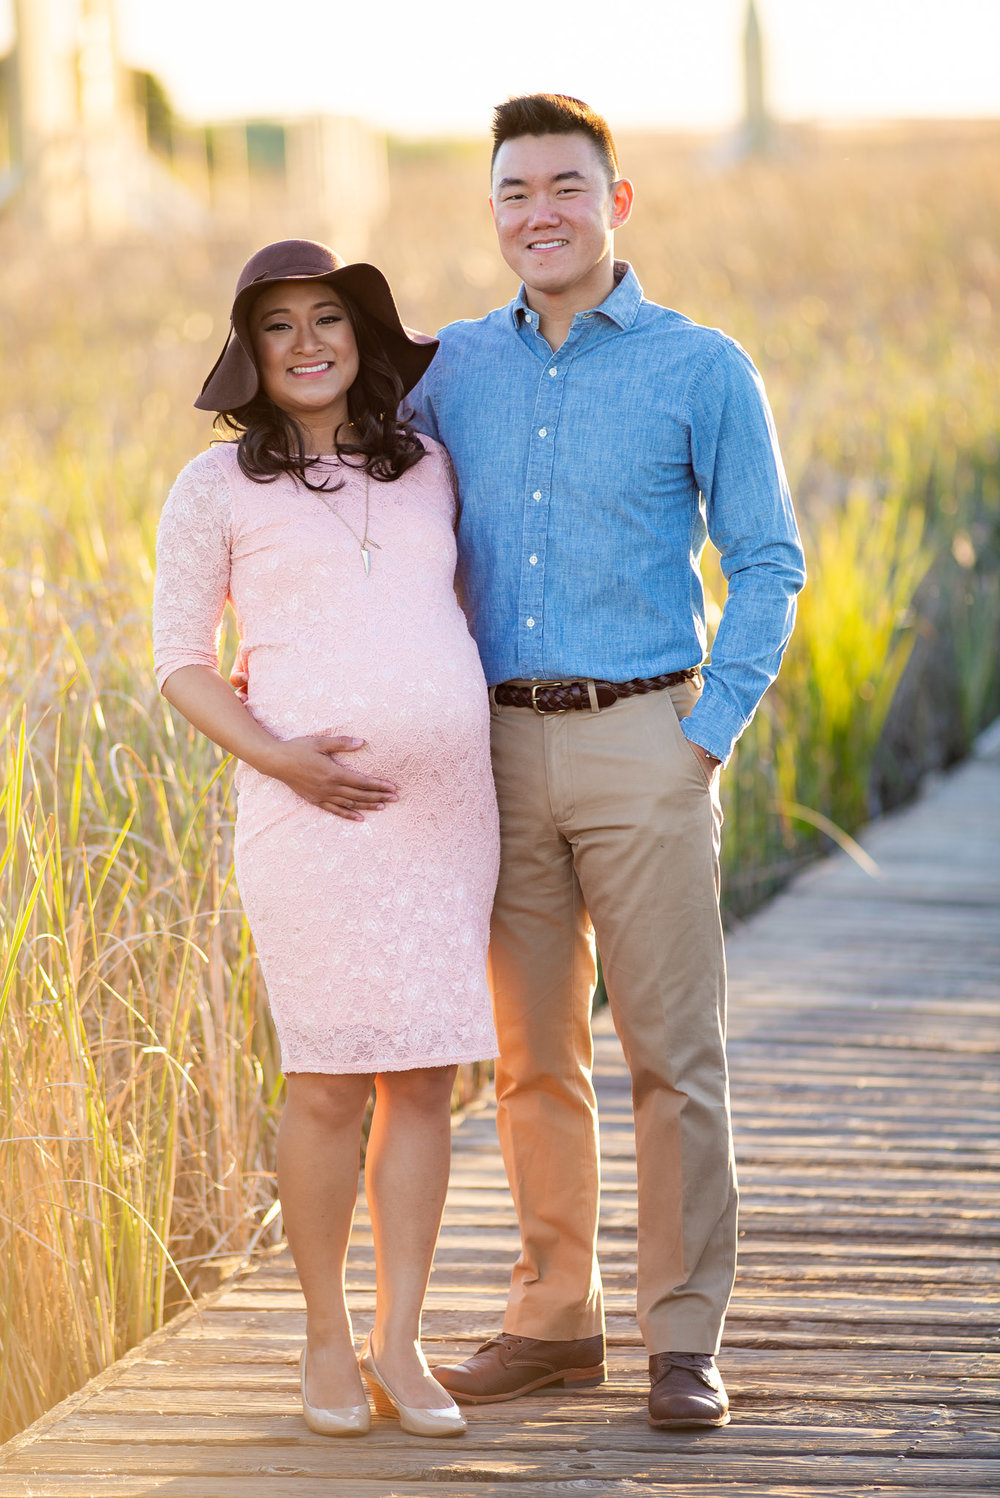 Maternity Photographer Orange County CA-13.jpg